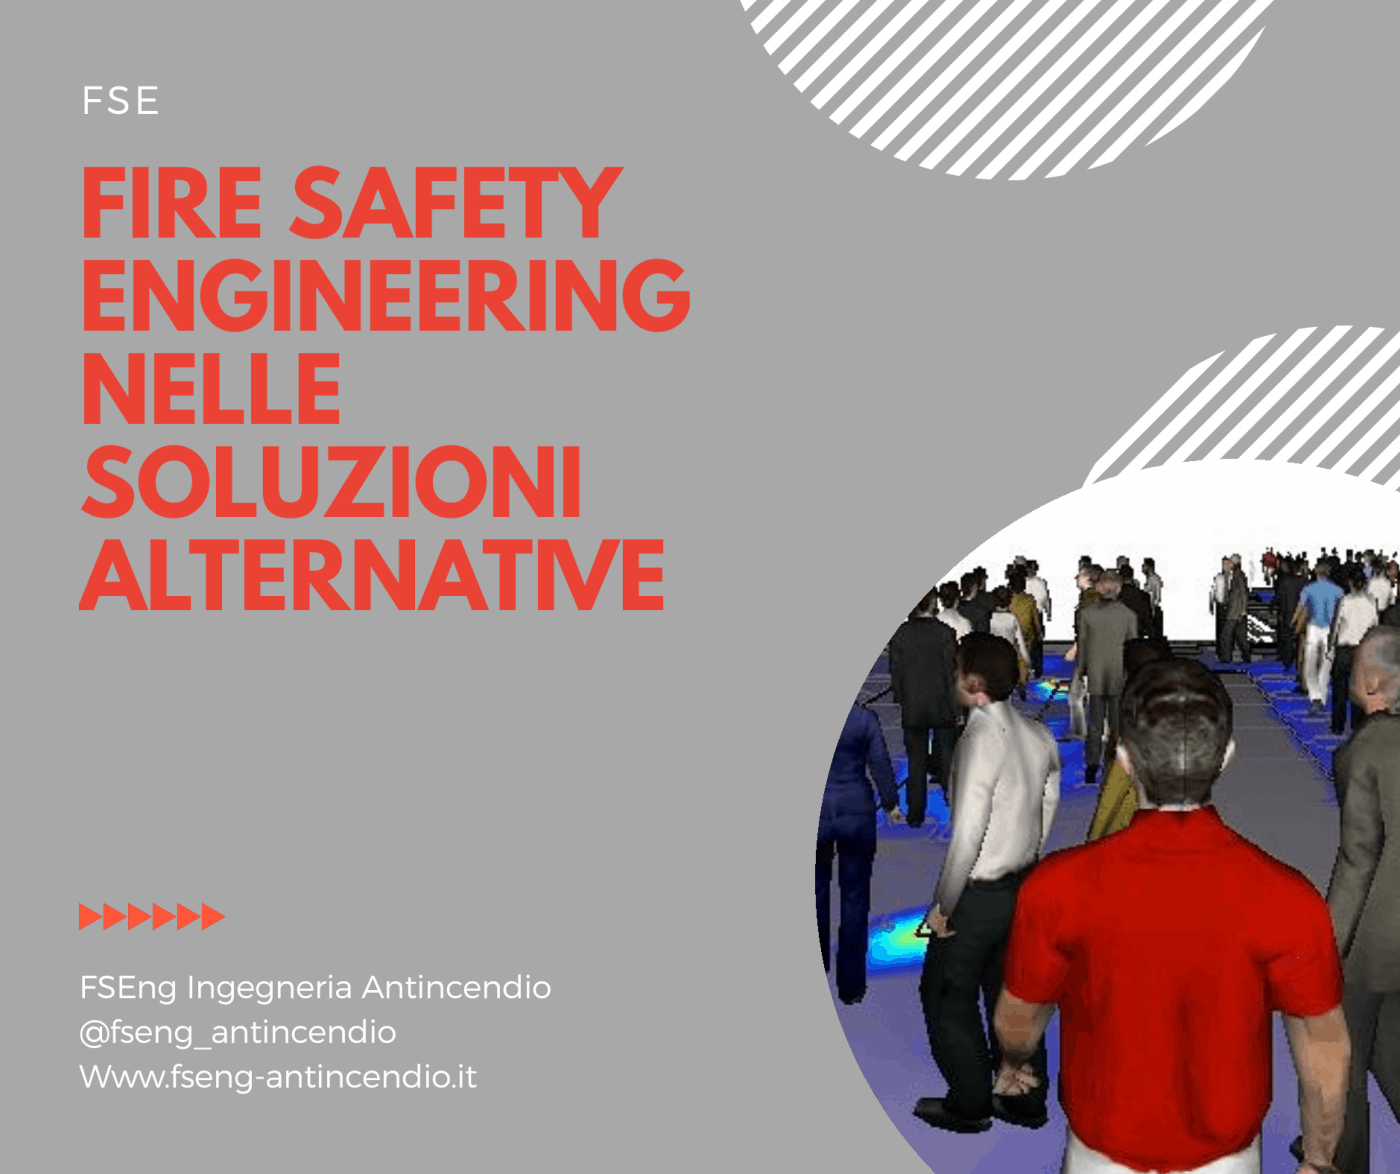 Soluzione alternativa in fire safety engineering FSE